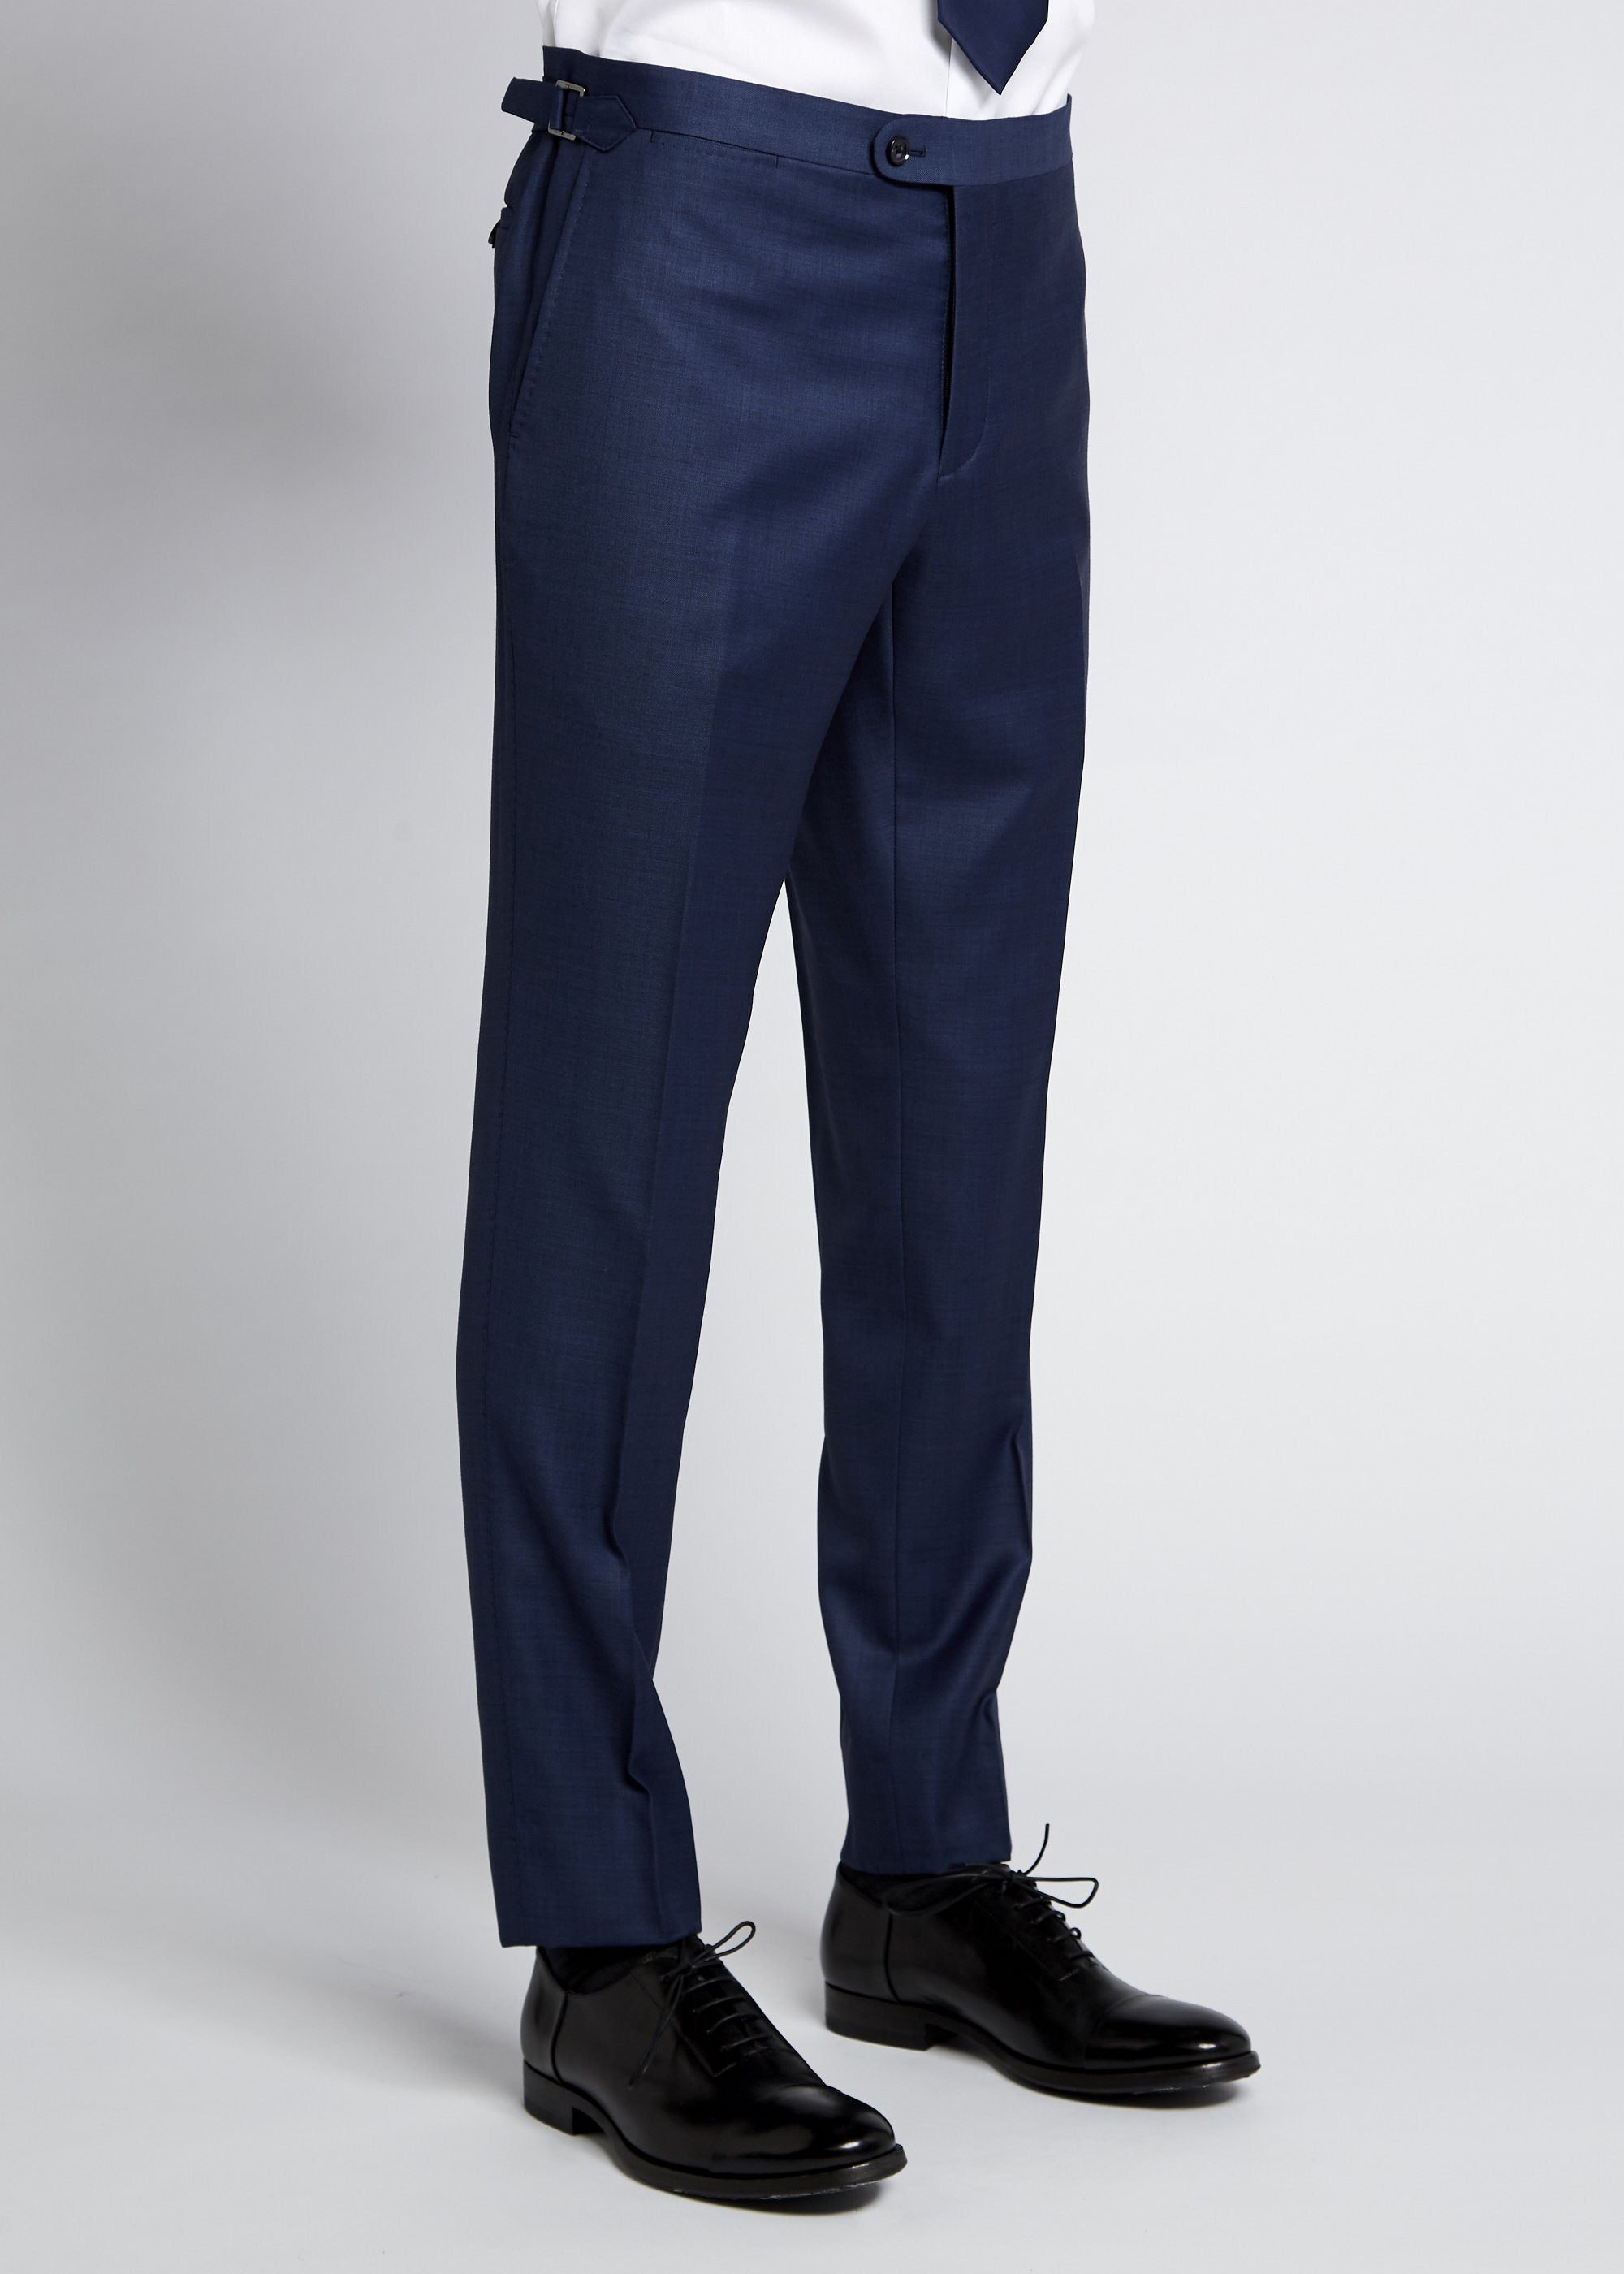 Apollo Trouser - Air Force Navy